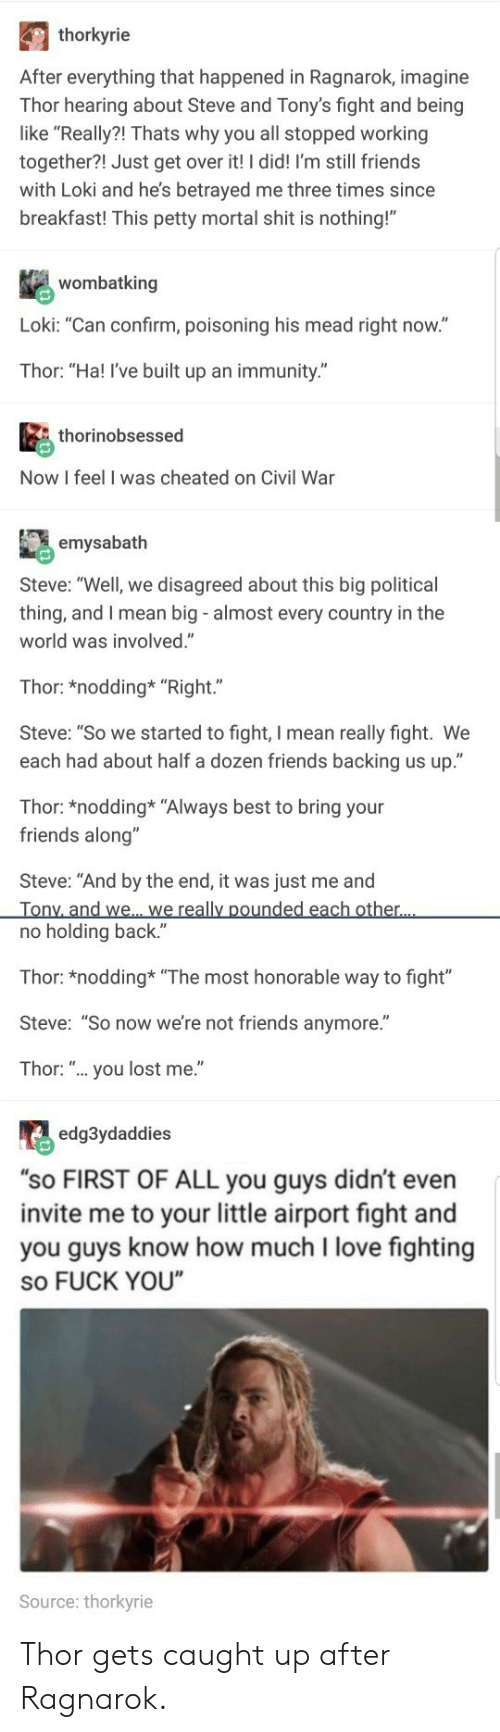 "tonys: thorkyrie  After everything that happened in Ragnarok, imagine  Thor hearing about Steve and Tony's fight and being  like ""Really?! Thats why you all stopped working  together?! Just get over it! I did! I'm still friends  with Loki and he's betrayed me three times since  breakfast! This petty mortal shit is nothing!""  wombatking  Loki: ""Can confirm, poisoning his mead right now.""  Thor: ""Ha! I've built up an immunity.""  thorinobsessed  Now I feel I was cheated on Civil War  emysabath  Steve: ""Well, we disagreed about this big political  thing, and I mean big - almost every country in the  world was involved.""  Thor: *nodding* ""Right.""  Steve: ""So we started to fight, I mean really fight. We  each had about half a dozen friends backing us up.""  Thor: *nodding* ""Always best to bring your  friends along""  Steve: ""And by the end, it was just me and  no holding back.""  Thor: *nodding ""The most honorable way to fight""  Steve: ""So now we're not friends anymore.""  Thor: "".. you lost me.""  edg3ydaddies  ""sO FIRST OF ALL you guys didn't even  invite me to your little airport fight and  you guys know how much I love fighting  so FUCK YOU  Source: thorkyrie Thor gets caught up after Ragnarok."